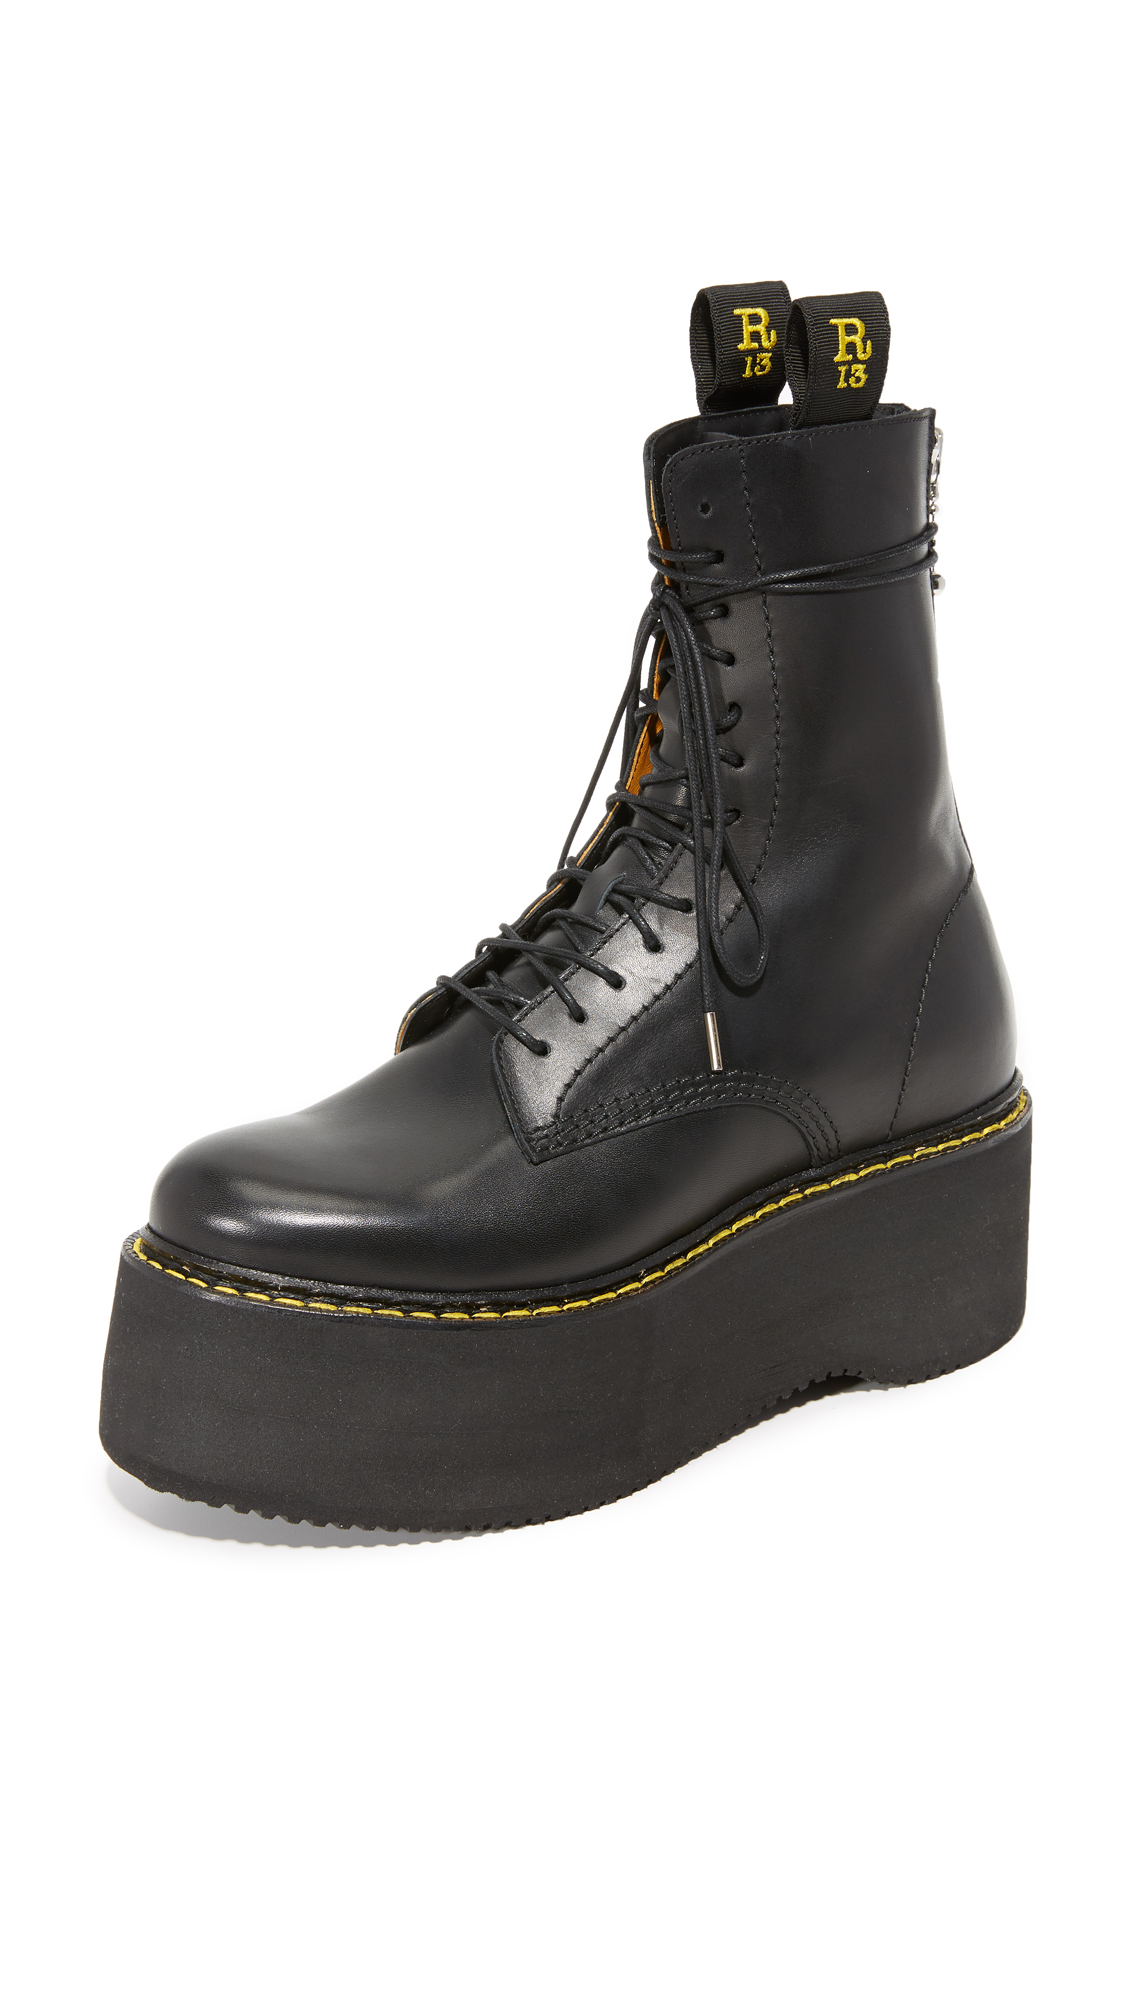 r13 female r13 combat stack boots black